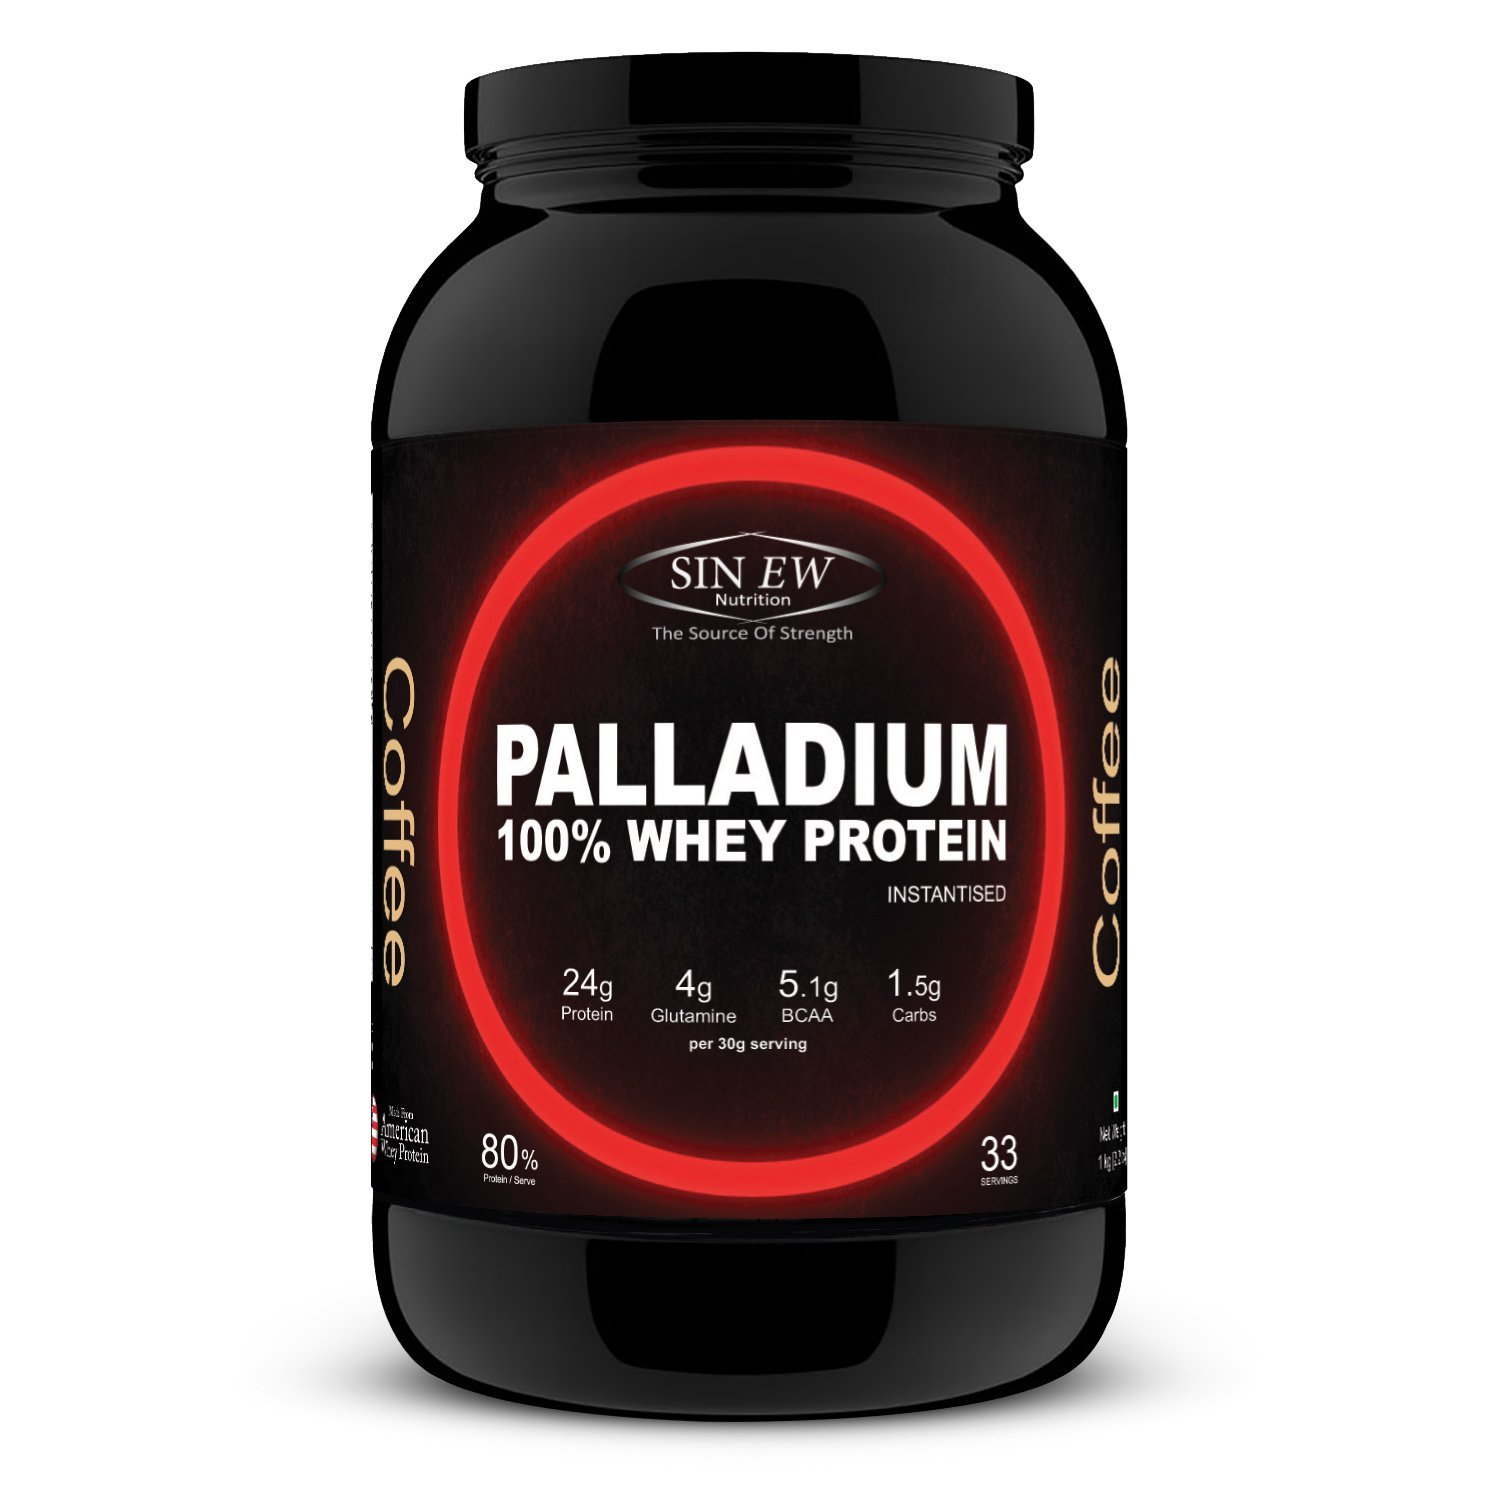 Buy Sinew Nutrition Palladium 100% Whey Protein Concentrate Powder 1 Kg / 2.2 Lbs (33 Servings ...